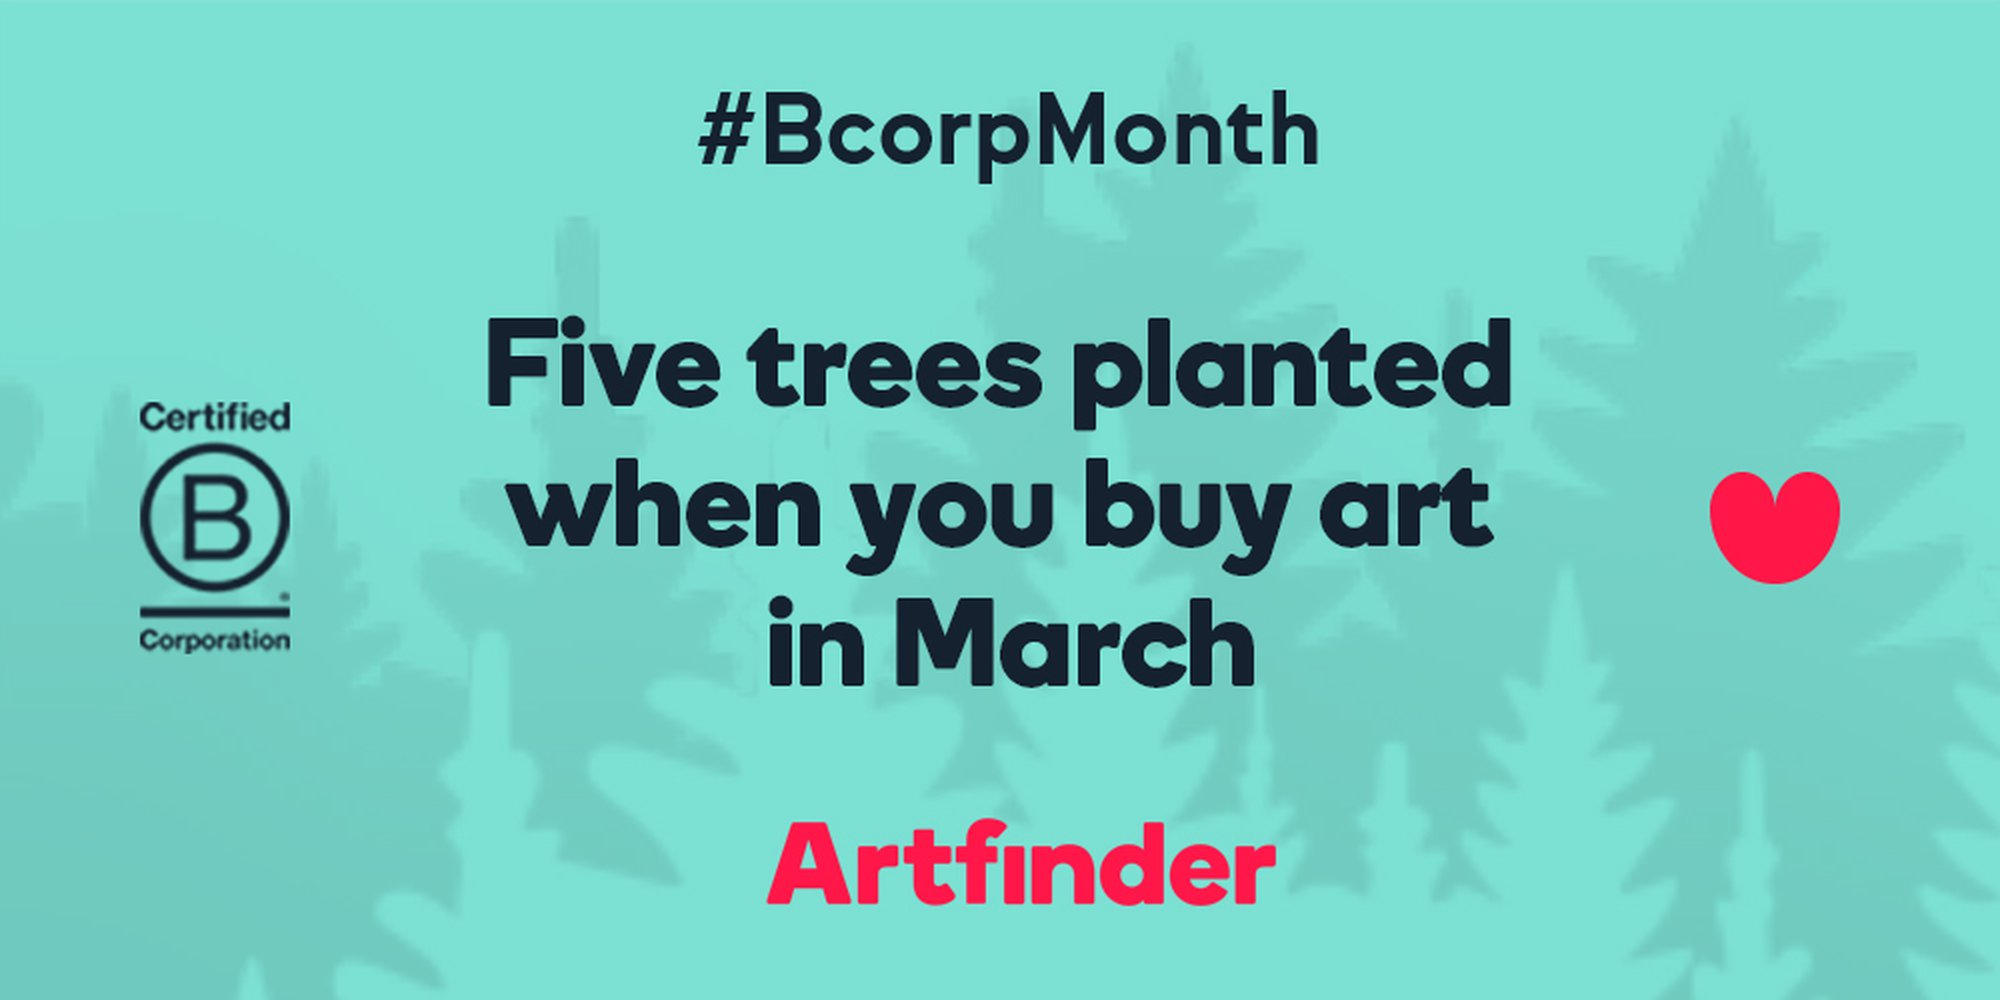 Artfinder is celebrating B Corp Month!